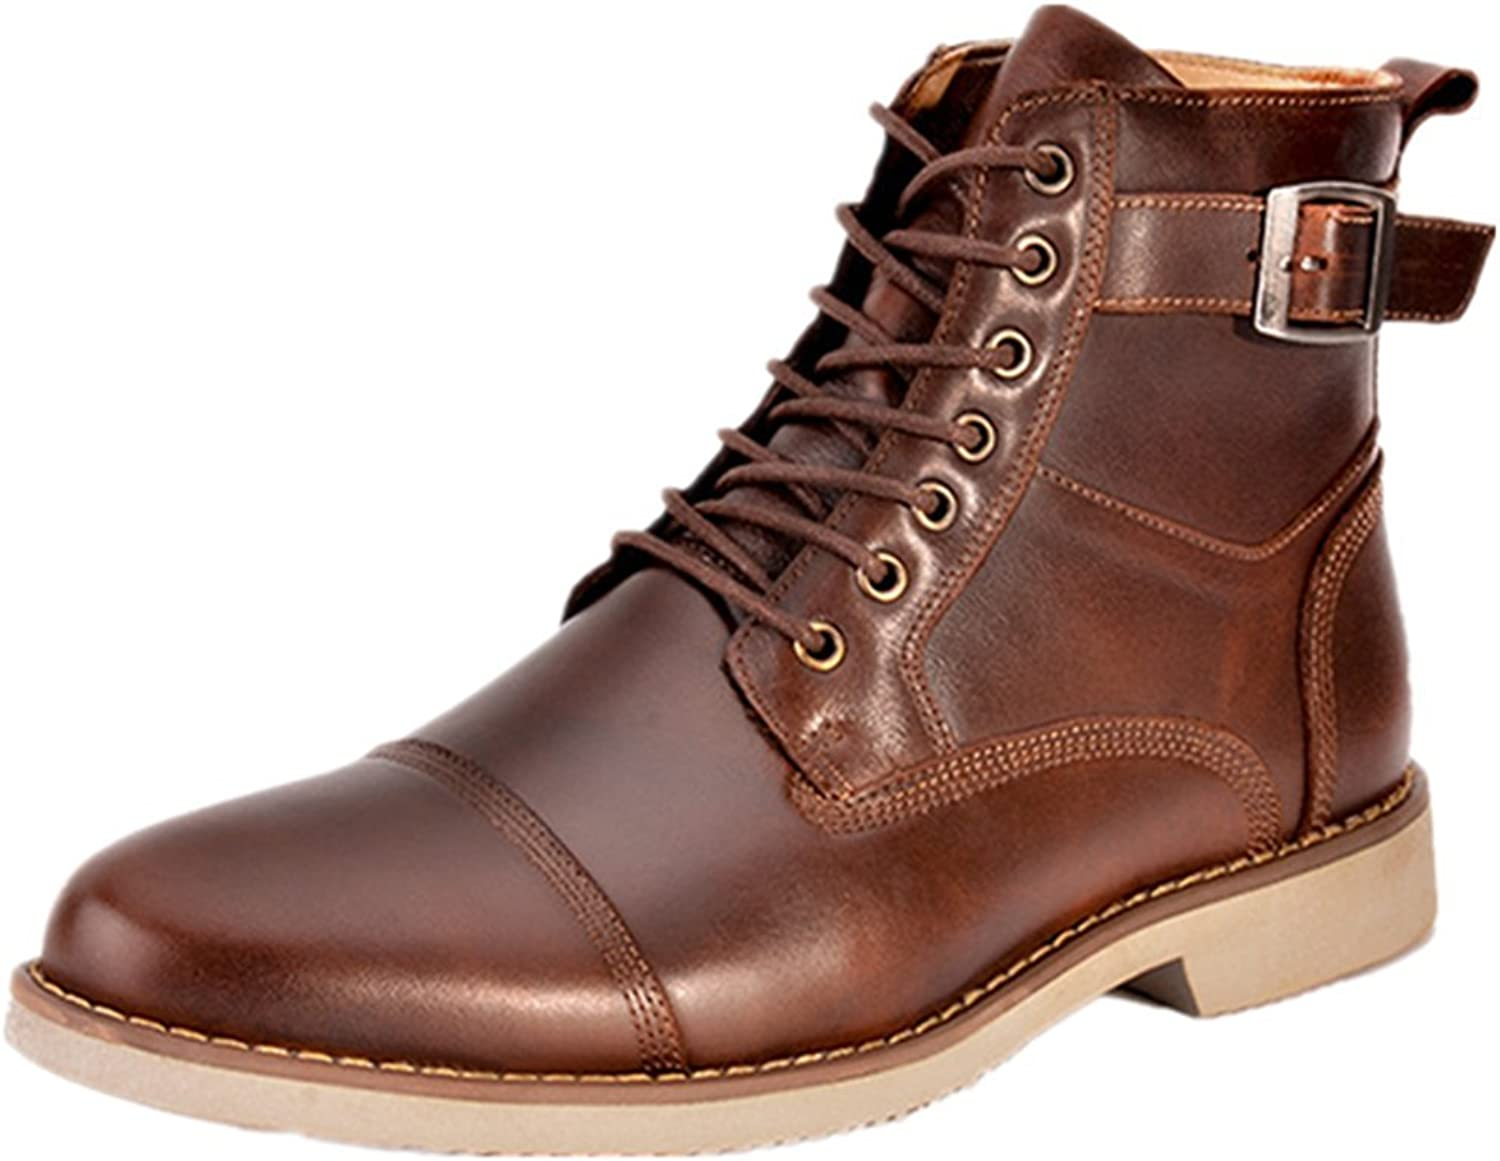 Jackdaine Men's high-top Leather Strap Men's Martin Boots Casual Leather shoes